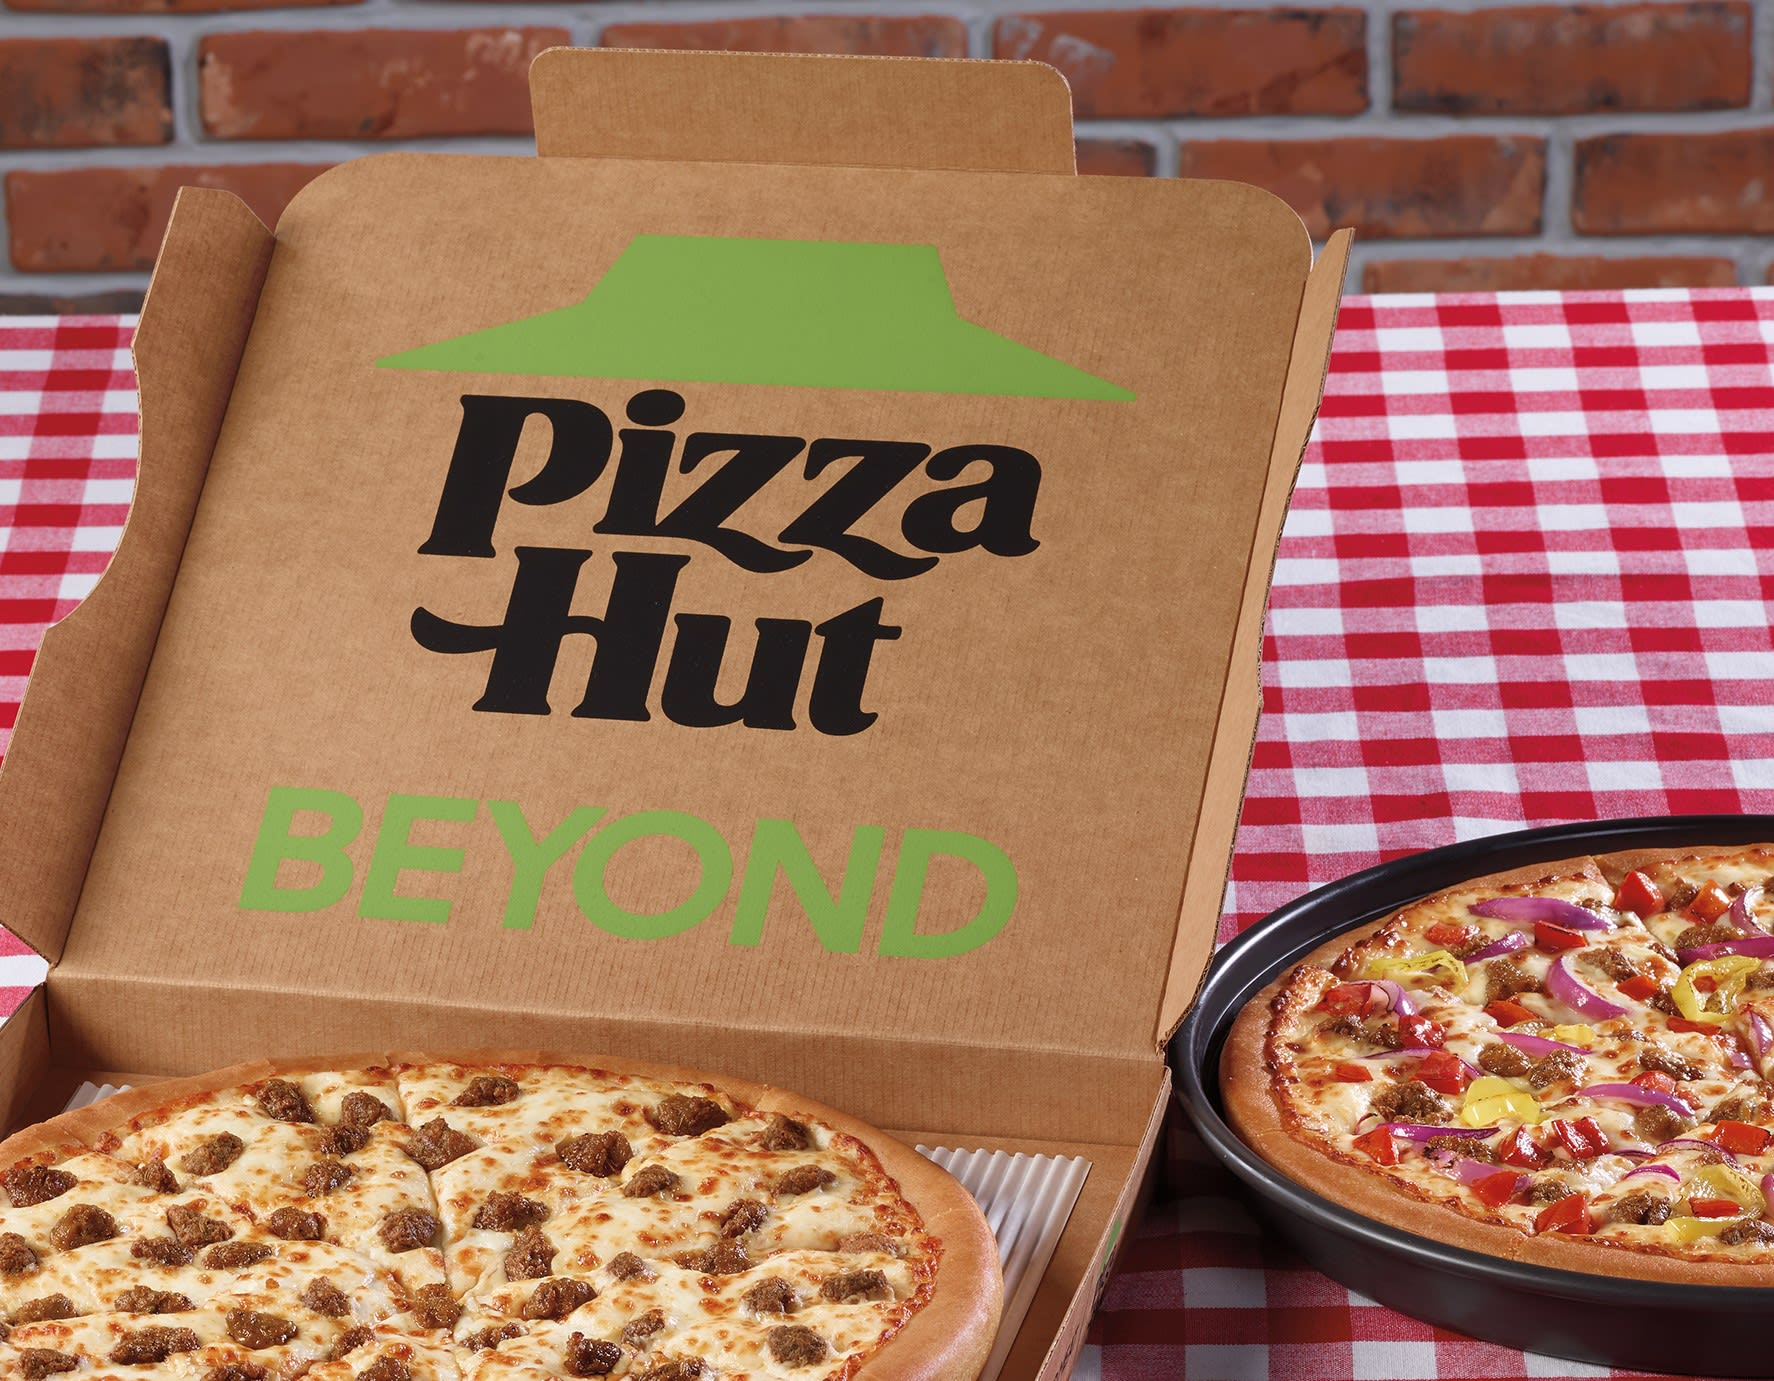 Pizza Hut to launch Beyond Meat sausage topping in the U.S.